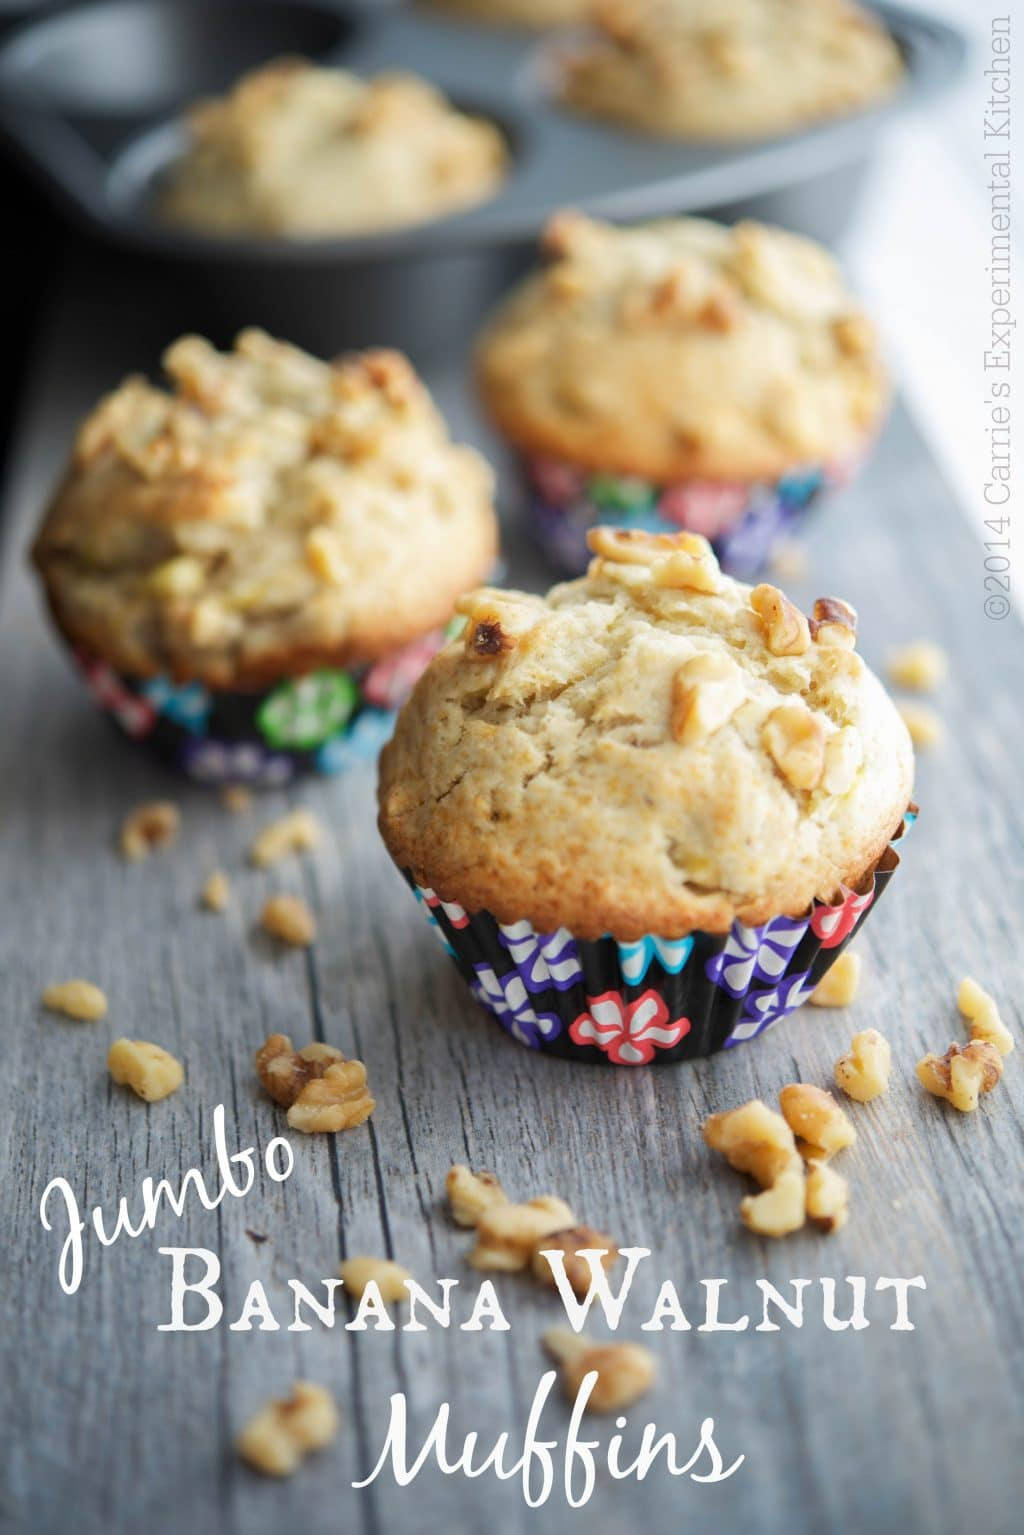 These Jumbo Banana Walnut Muffins make a great on the go breakfast or afternoon snack.